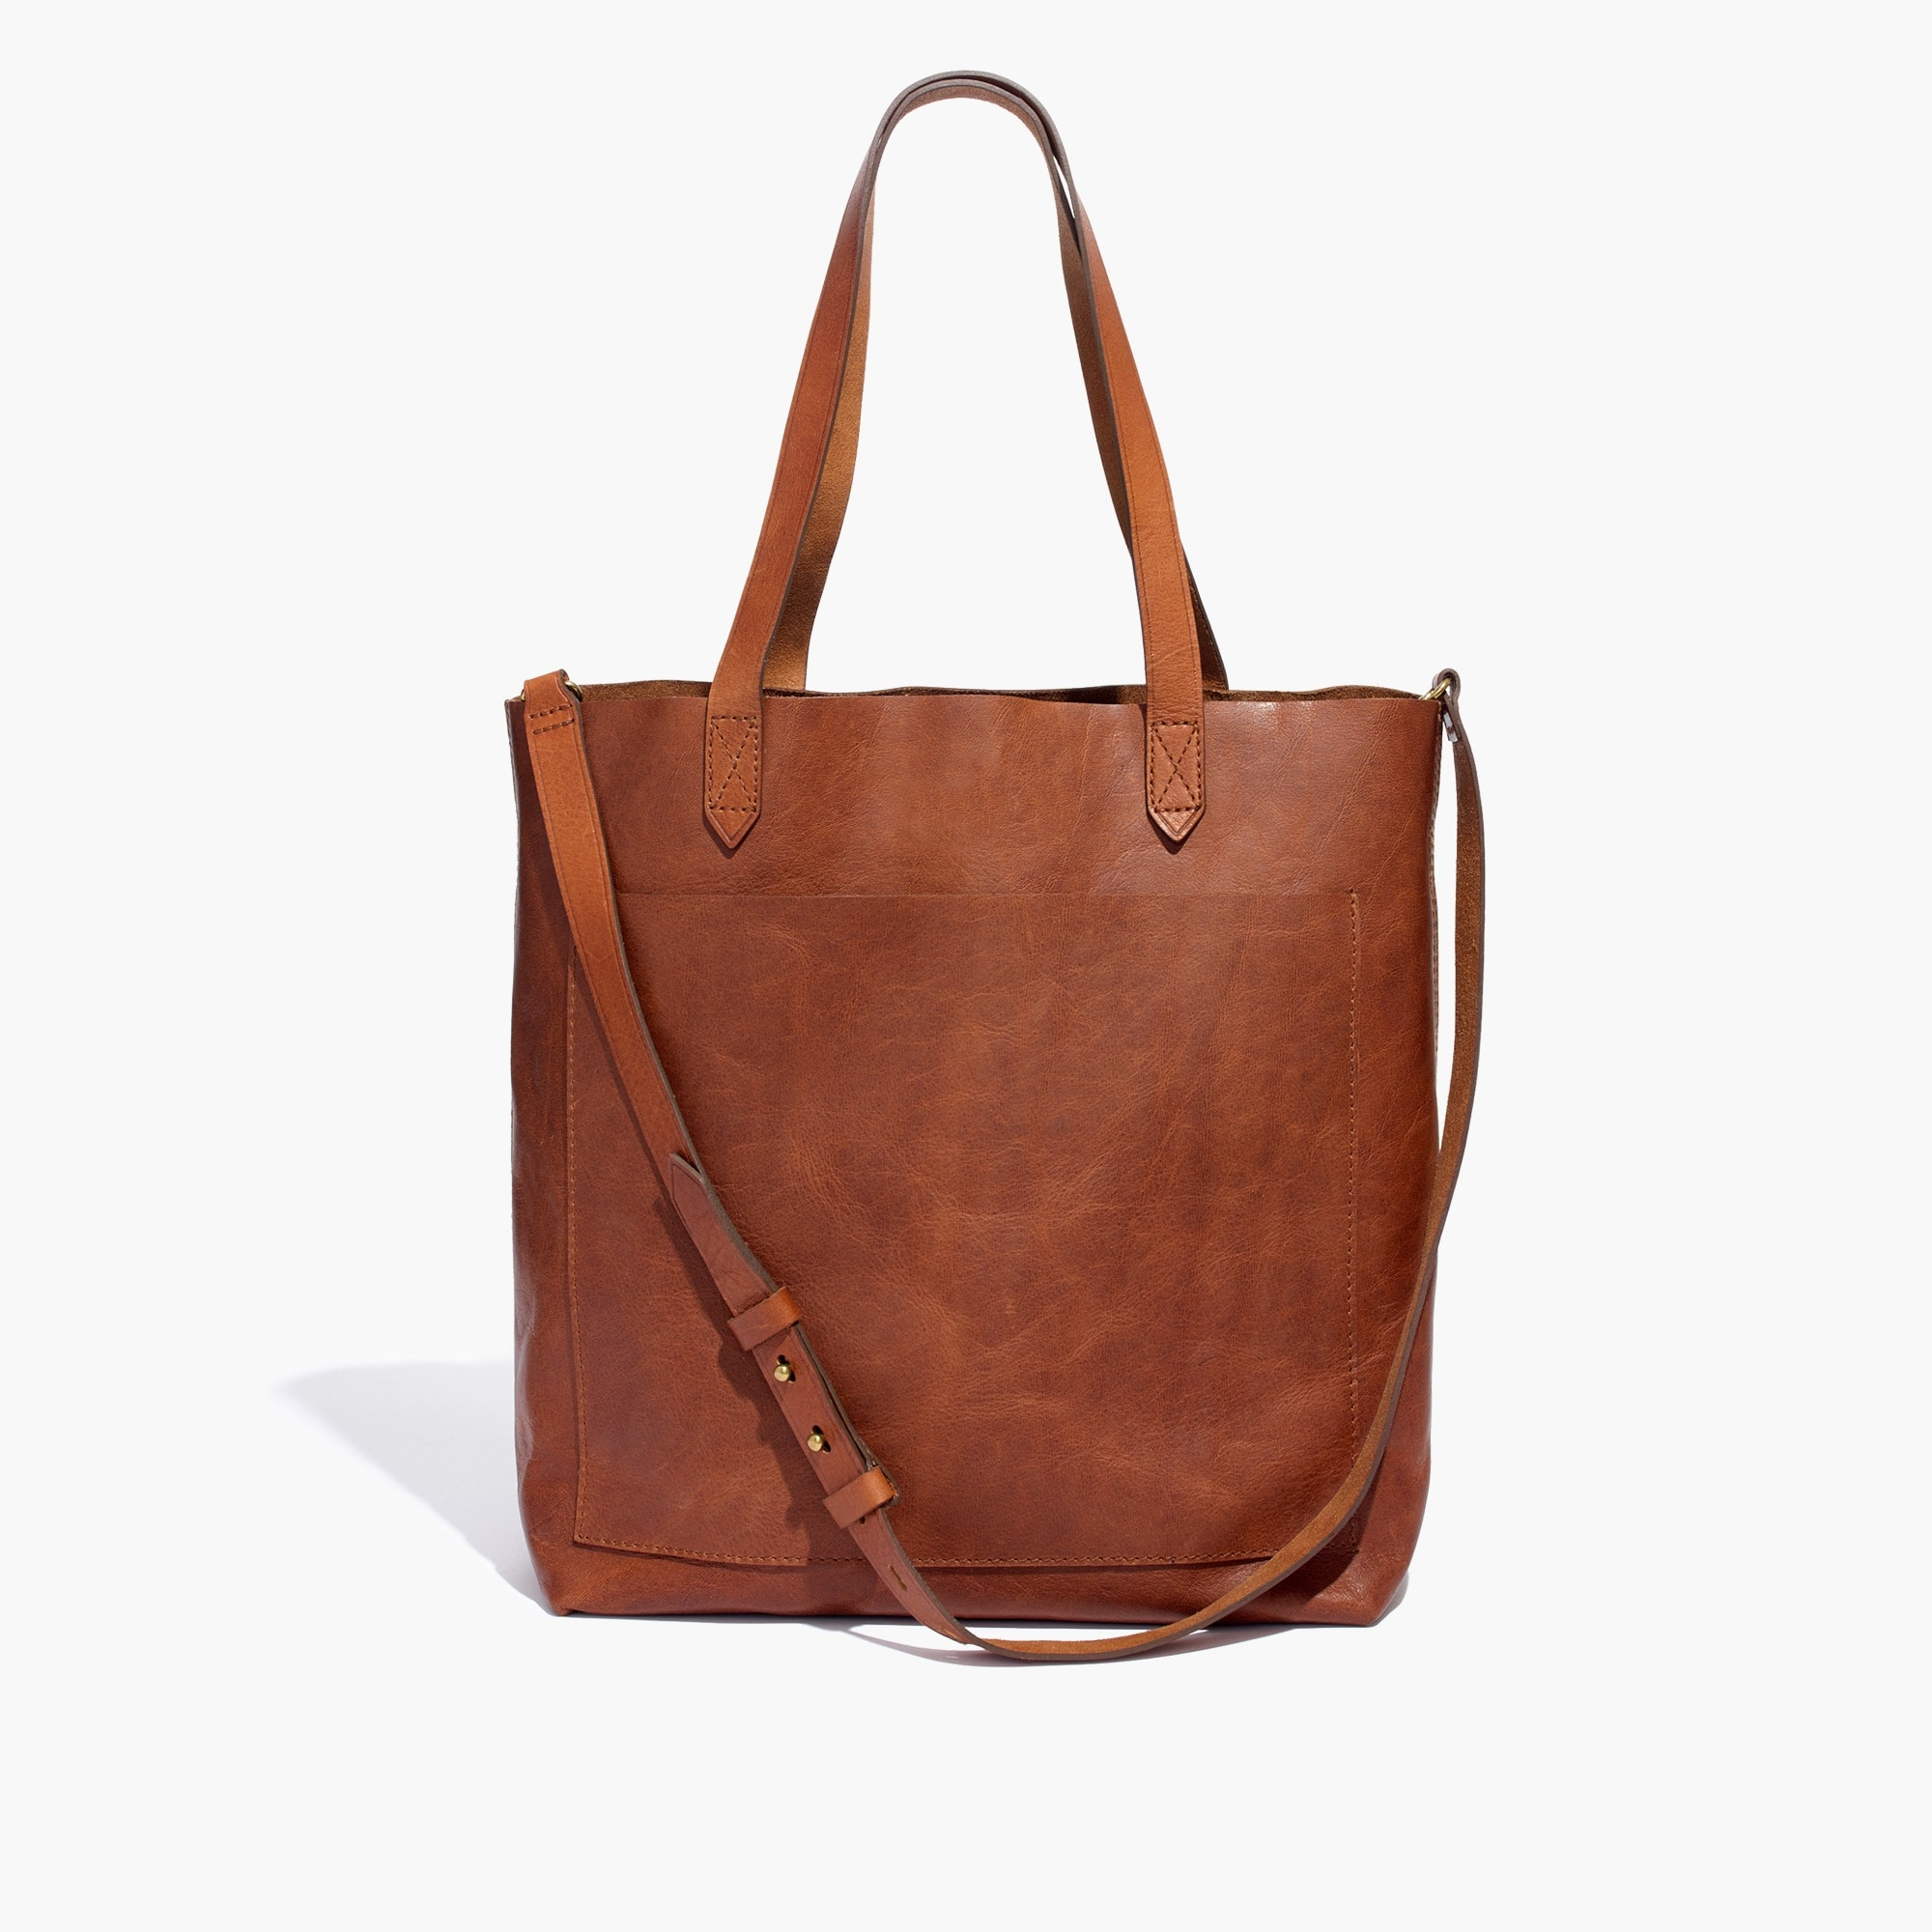 The Madewell Medium Transport tote